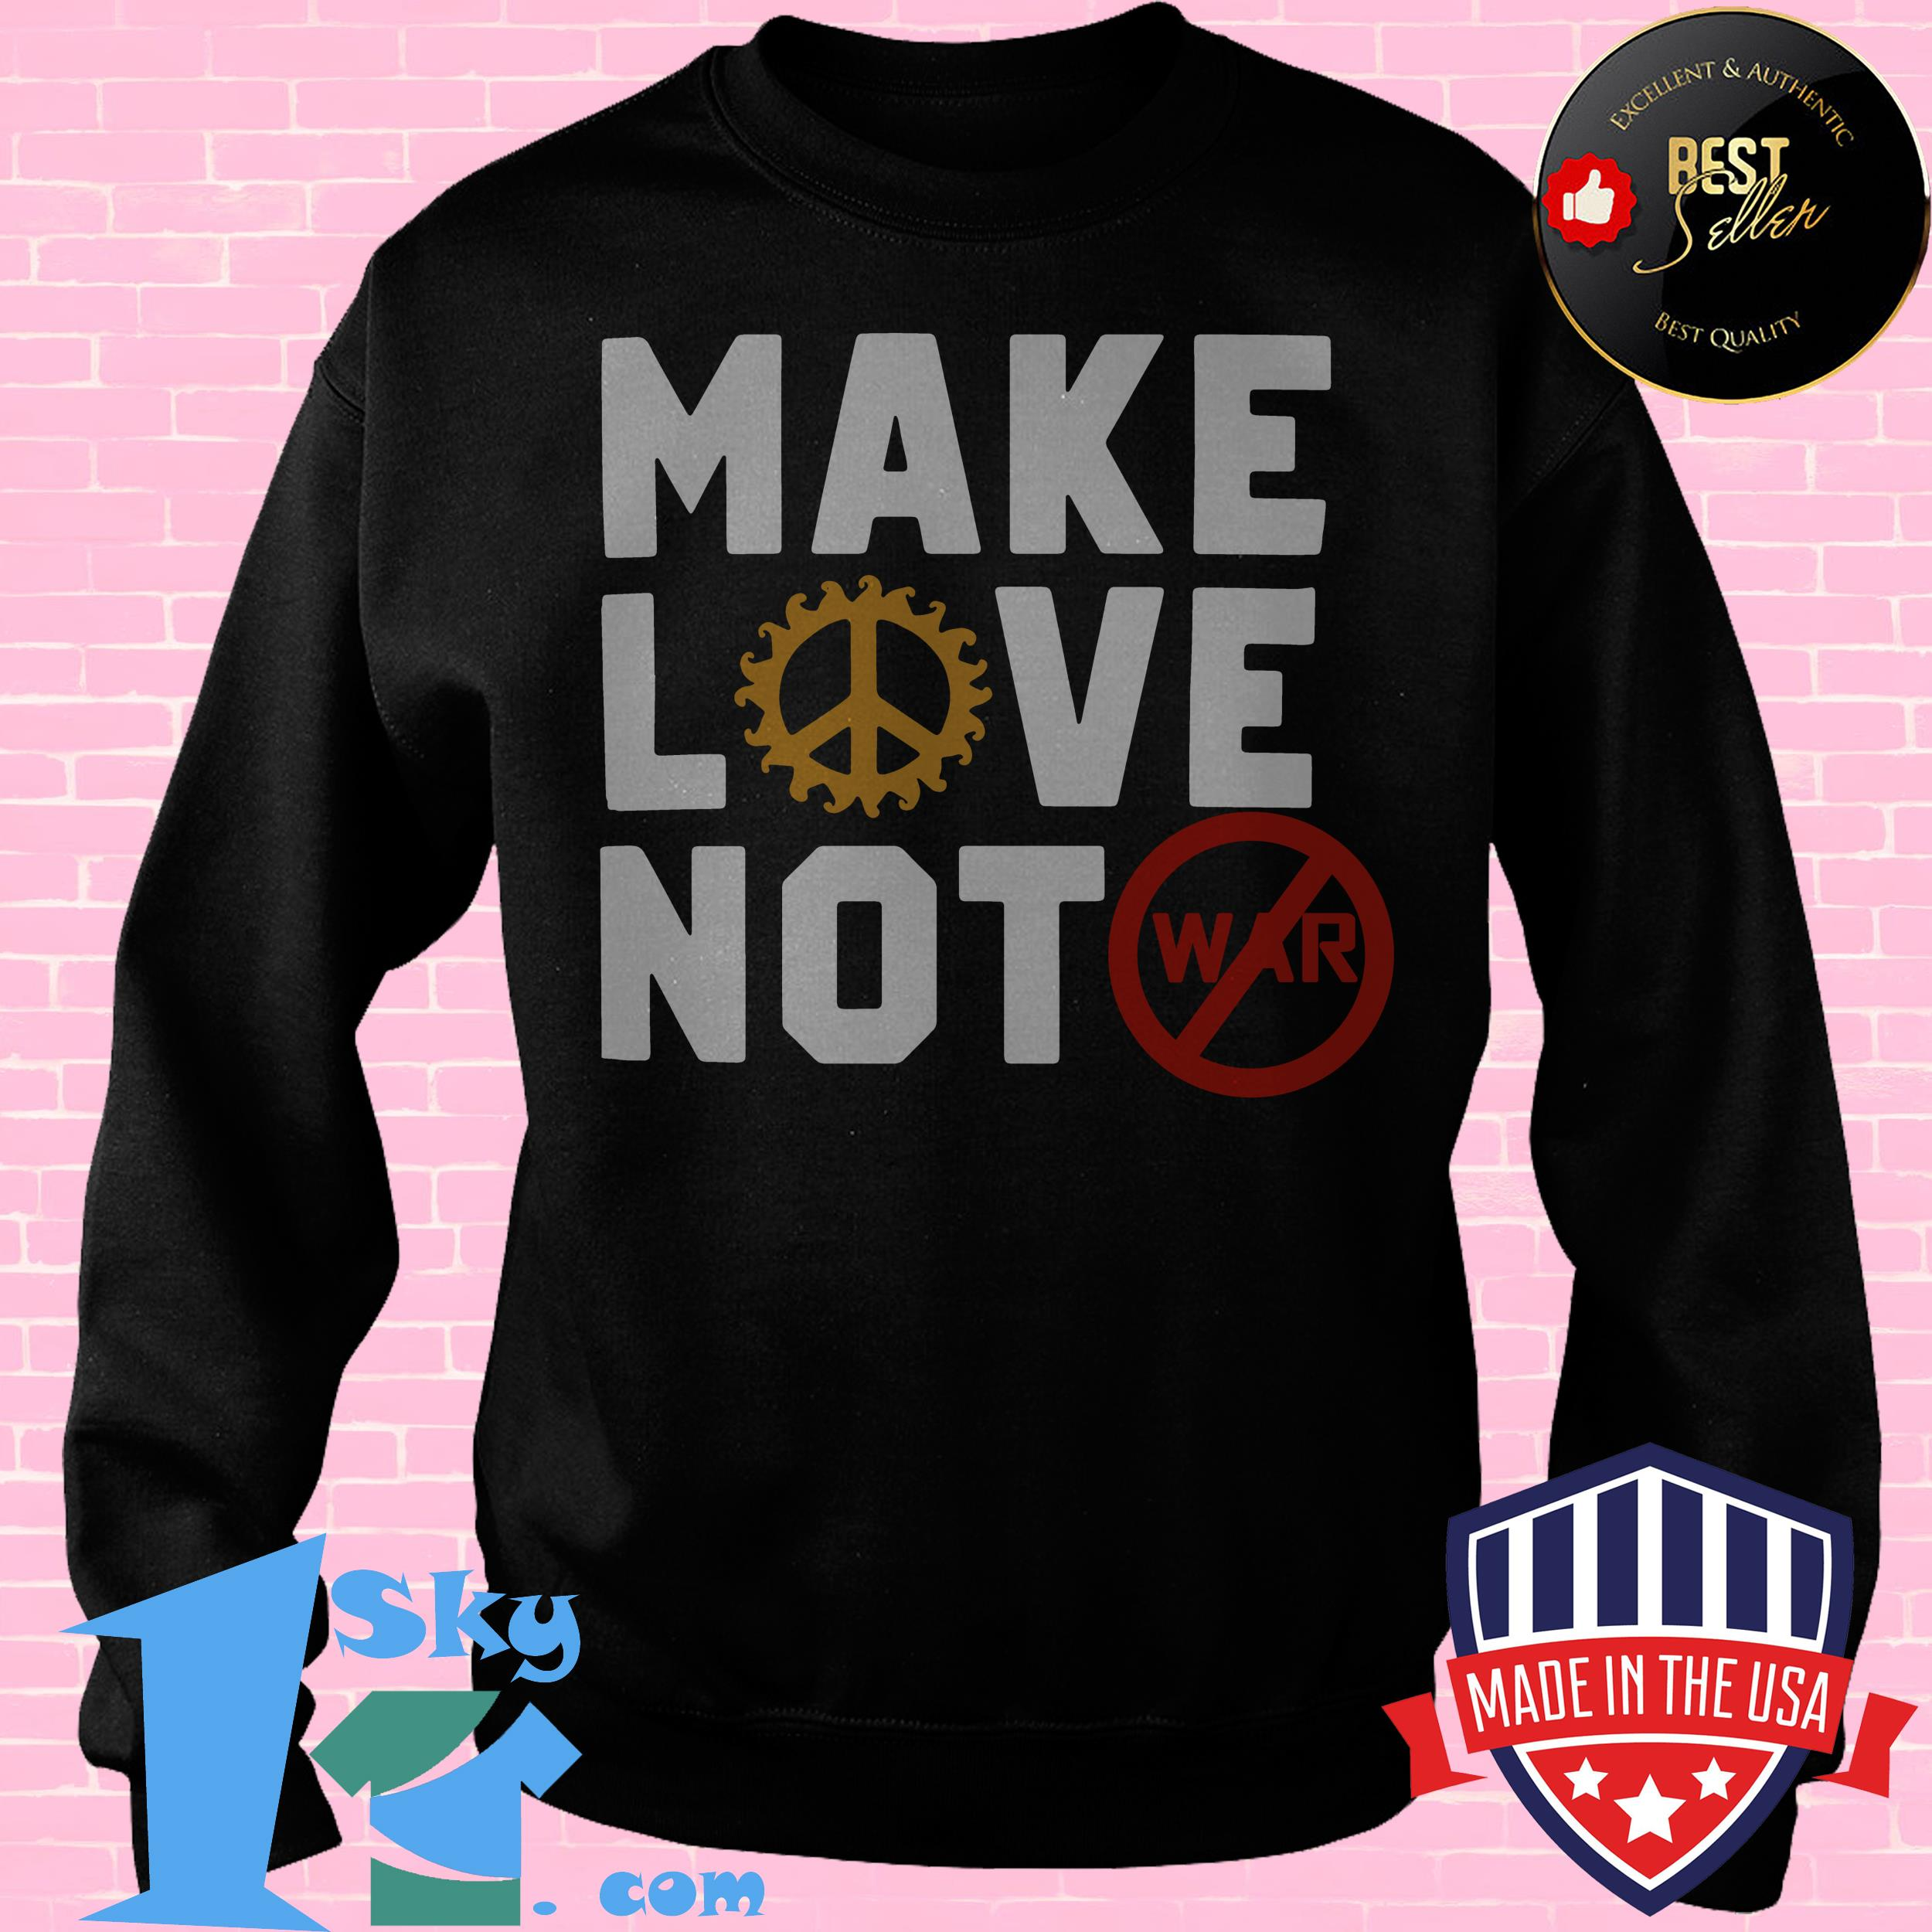 make love not war namast gift for hippie 70s sweatshirt - Make Love Not War Namast Gift for Hippie 70s shirt